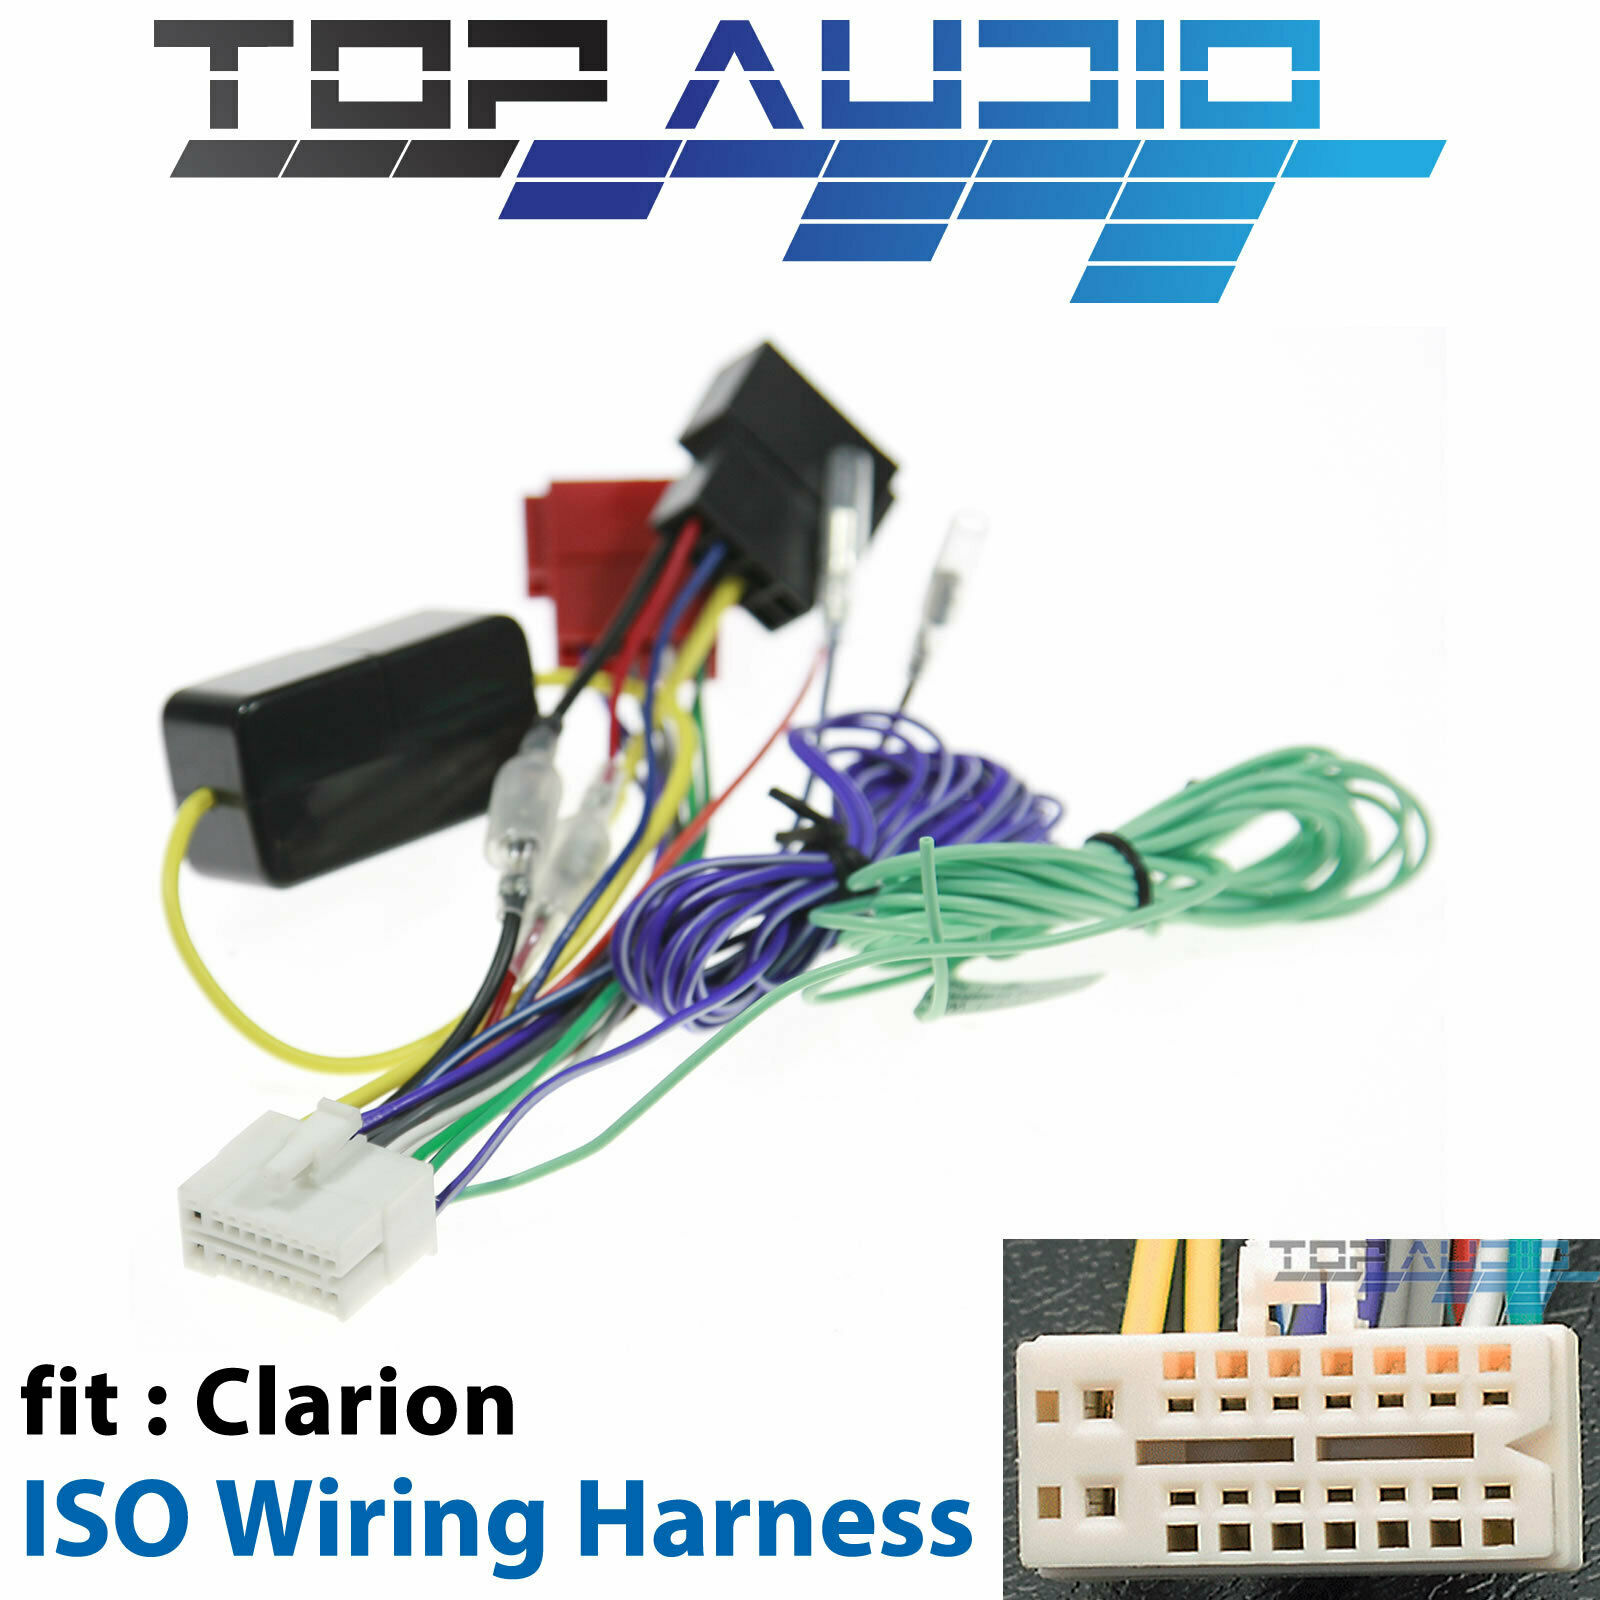 Clarion Vz402a Iso Wiring Harness Cable Connector Adaptor Lead Loom Wire Plug For Sale